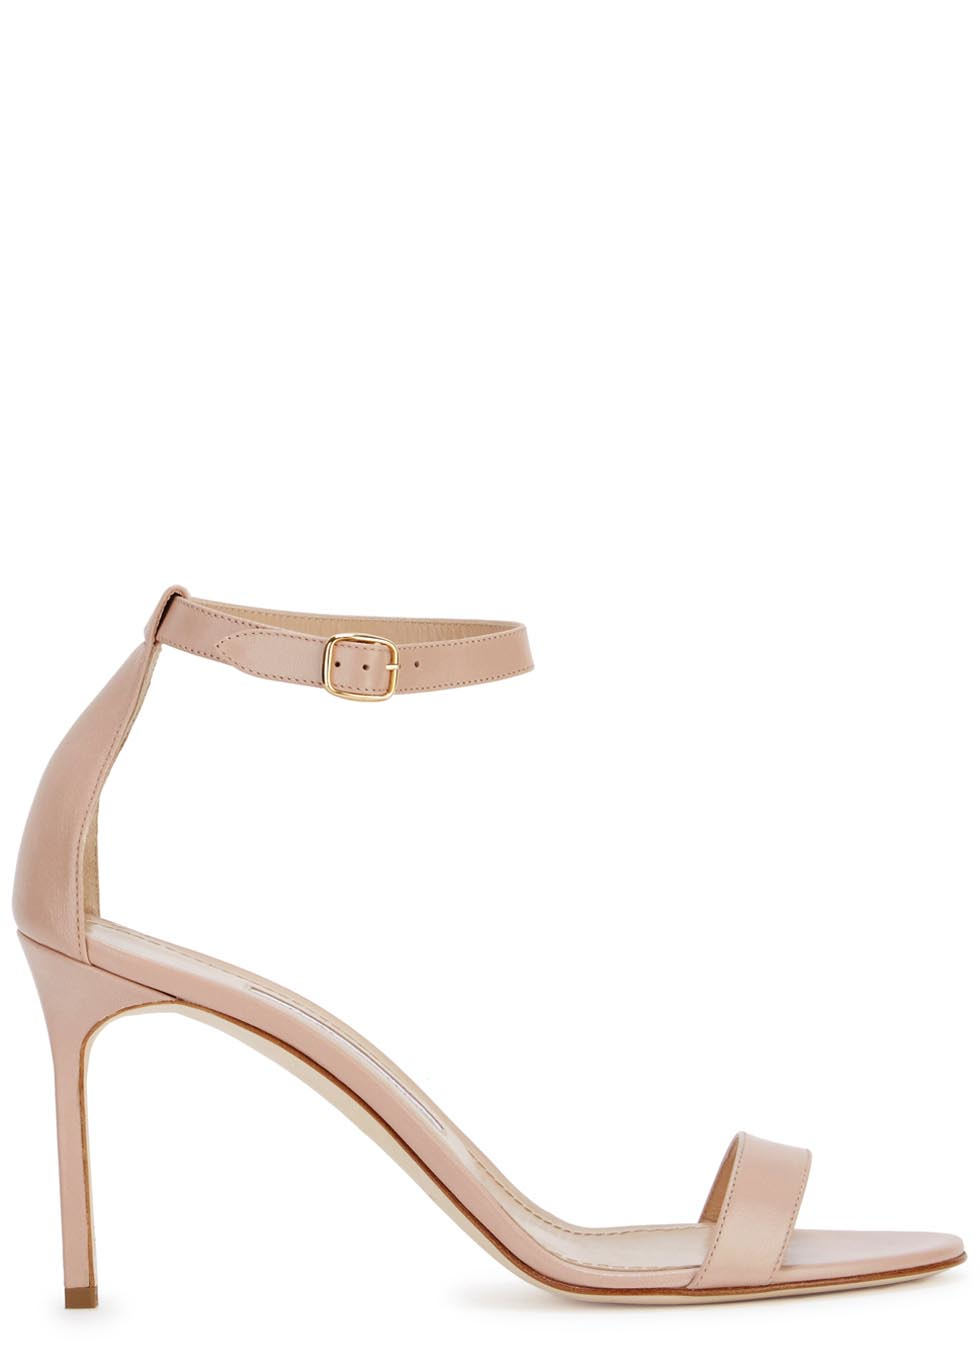 68d2a7f81a6a9 Manolo Blahnik Chaos 90 Blush Leather Sandals in Natural - Lyst